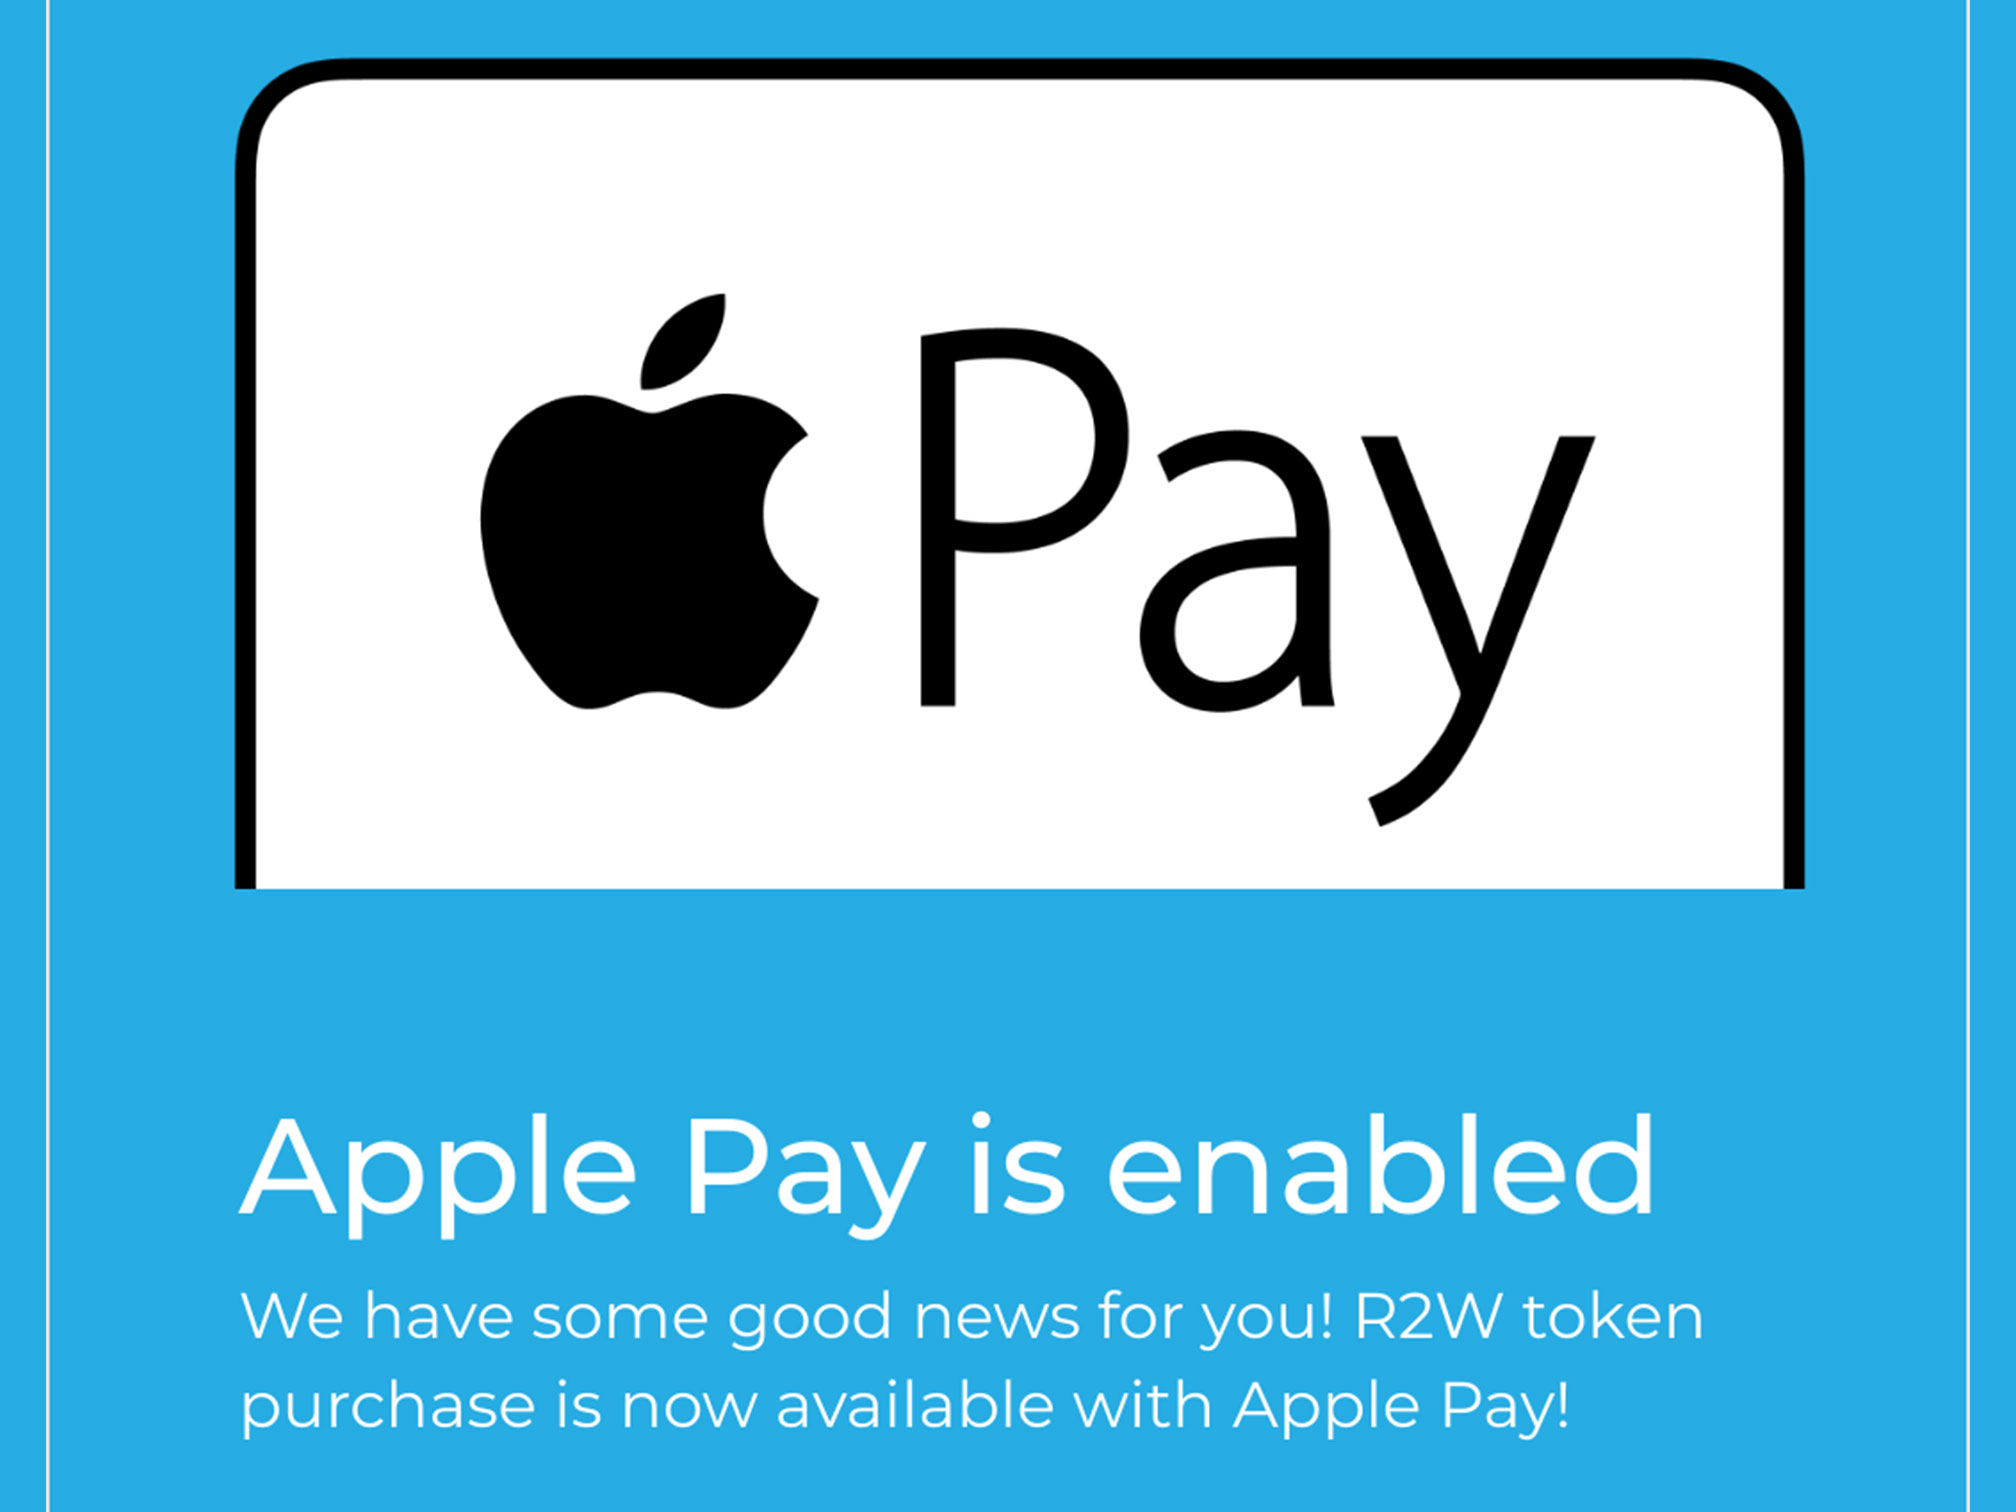 Apple Pay is enabled